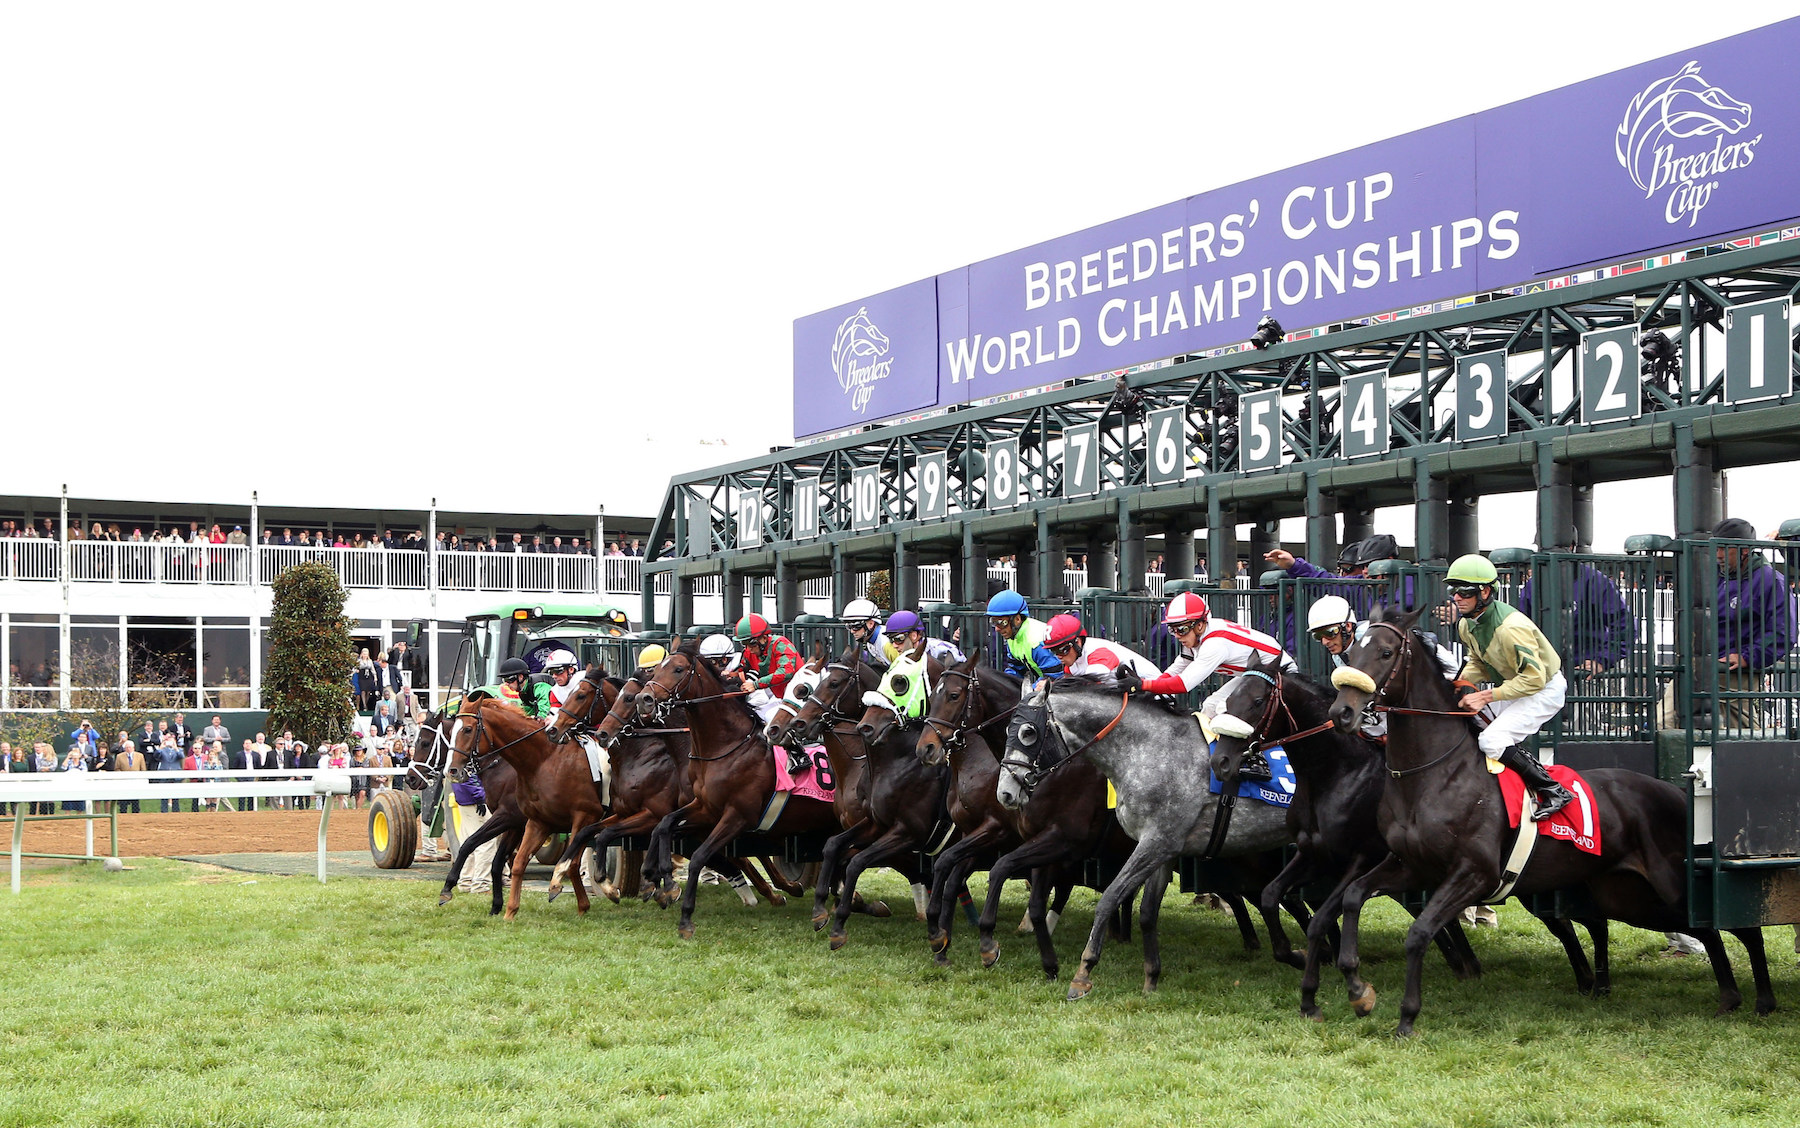 Guide to horse racing betting websites best online sports betting sites for us